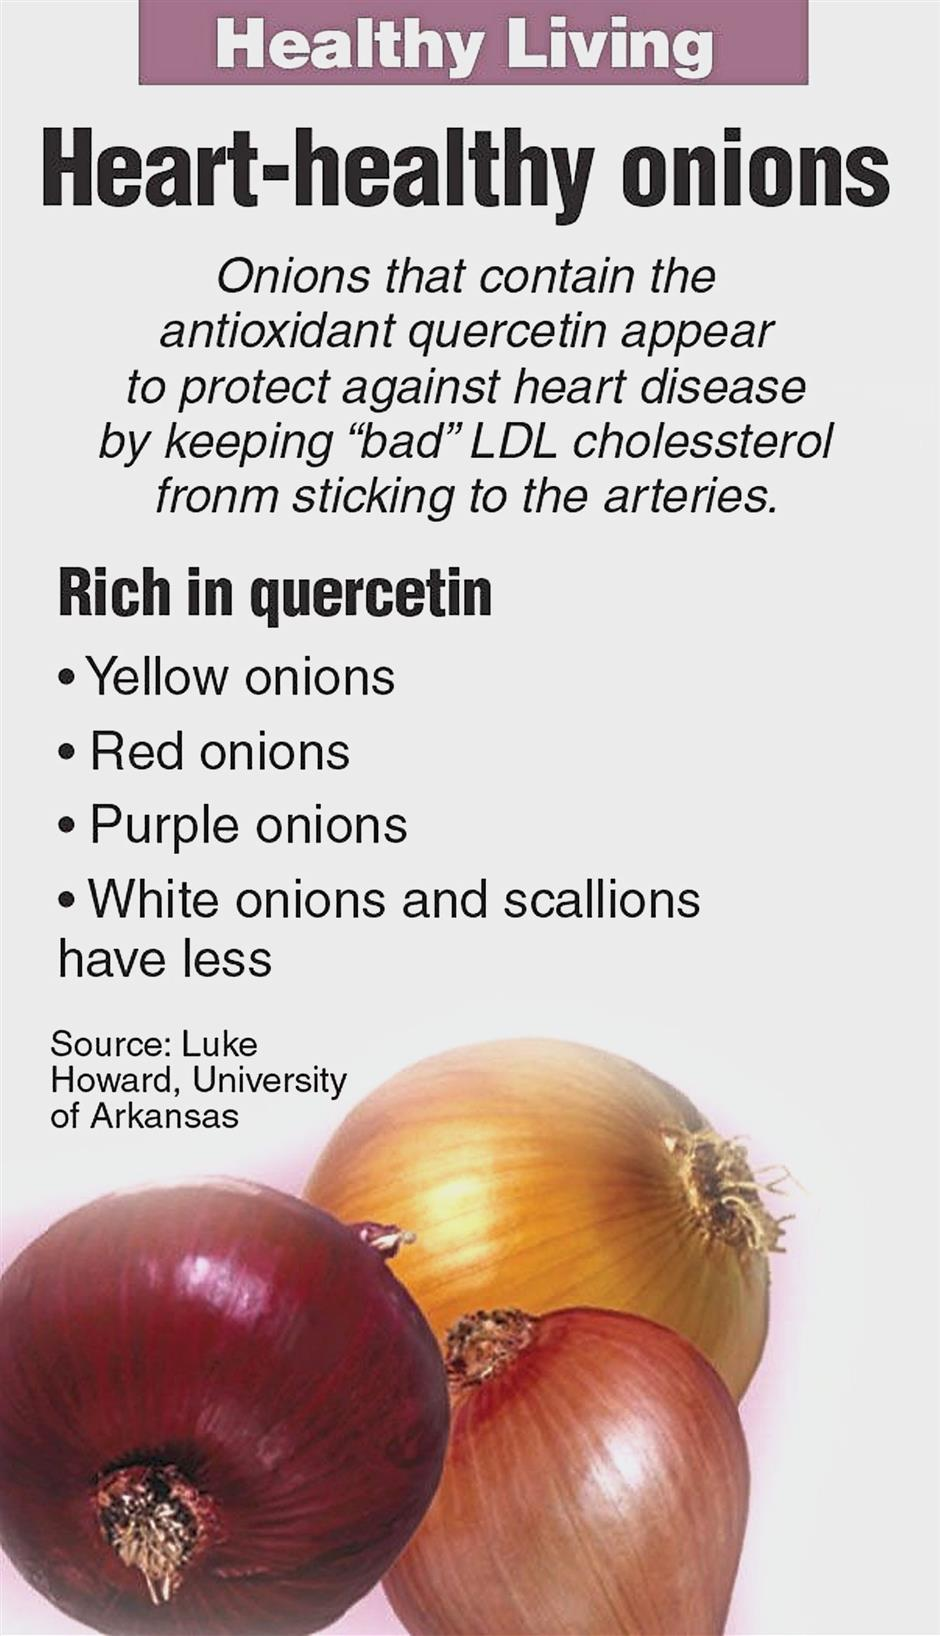 Weekly Healthy Living nutrition graphic: Antioxidants in some onions may protects against heart disease. TNS 2017